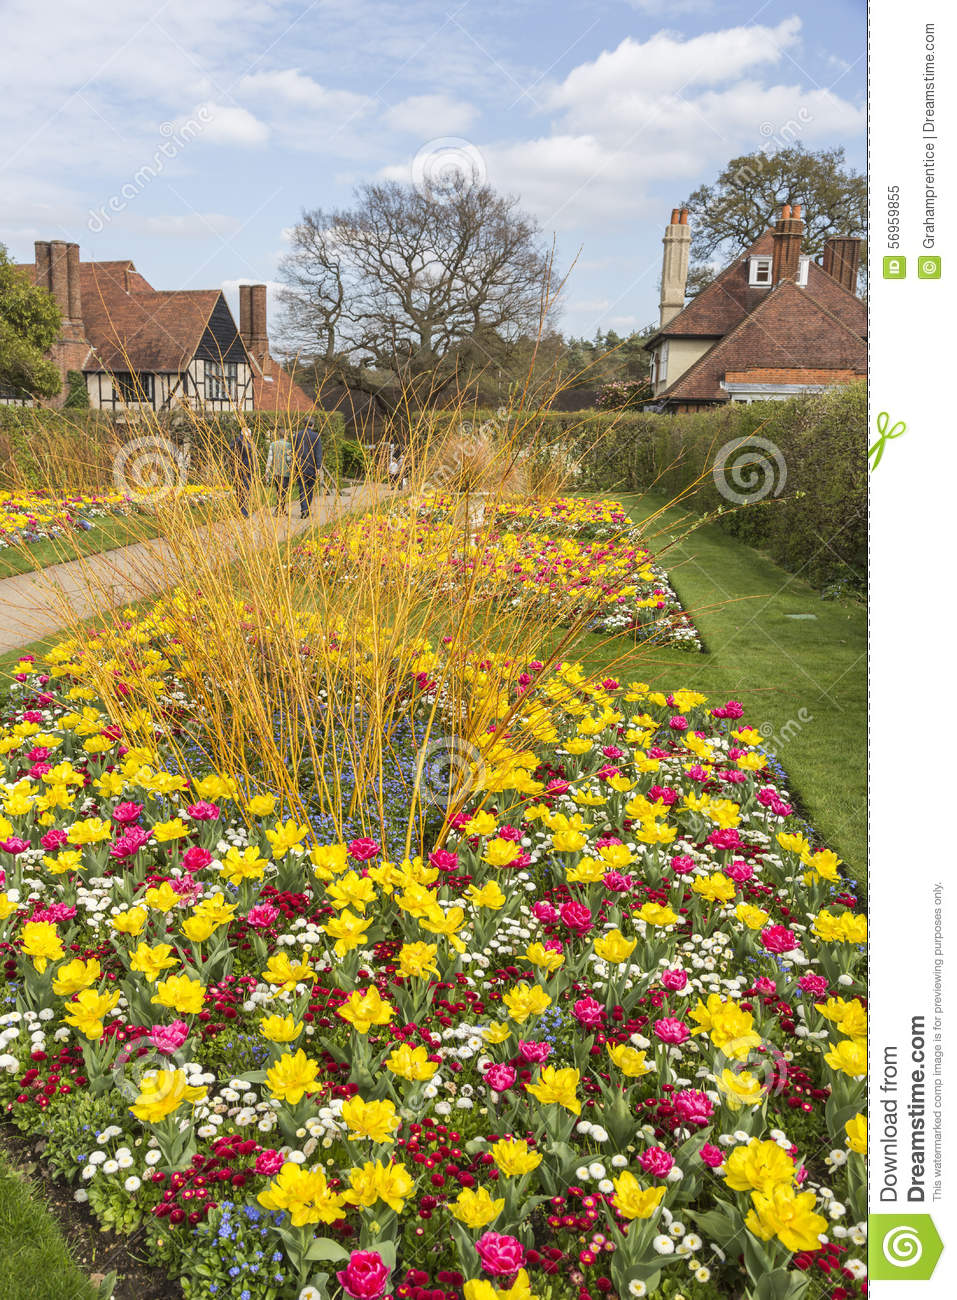 Flower bed bordersst flower bed edging ideas for your home pretty flower borders at rhs gardens wisley surrey stock mightylinksfo